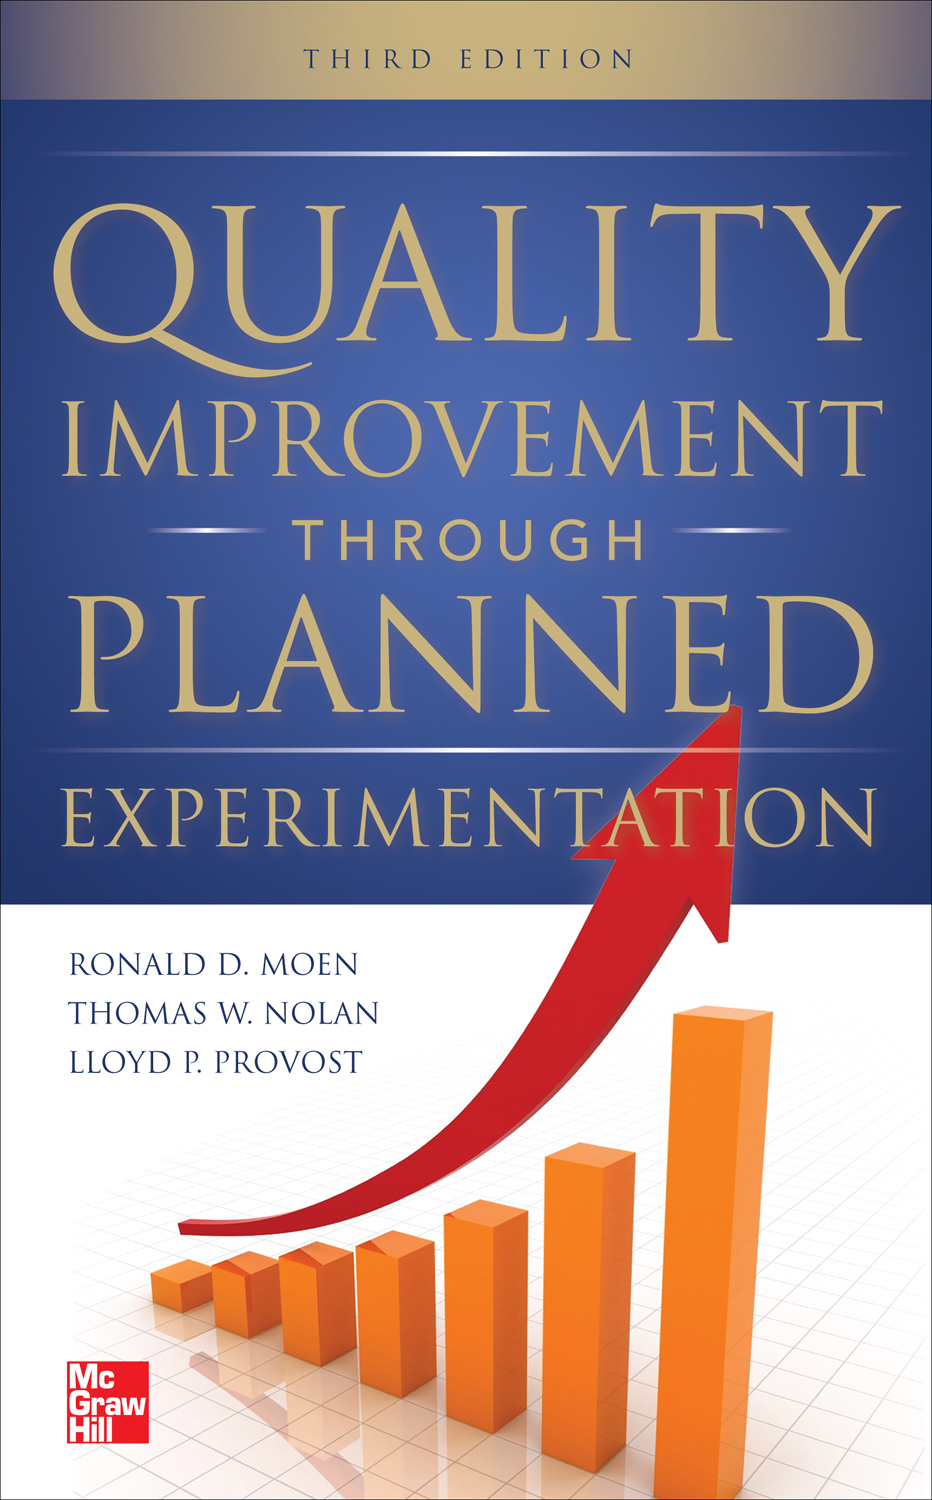 Download Ebook Quality Improvement Through Planned Experimentation 3/E (3rd ed.) by Ronald Moen Pdf